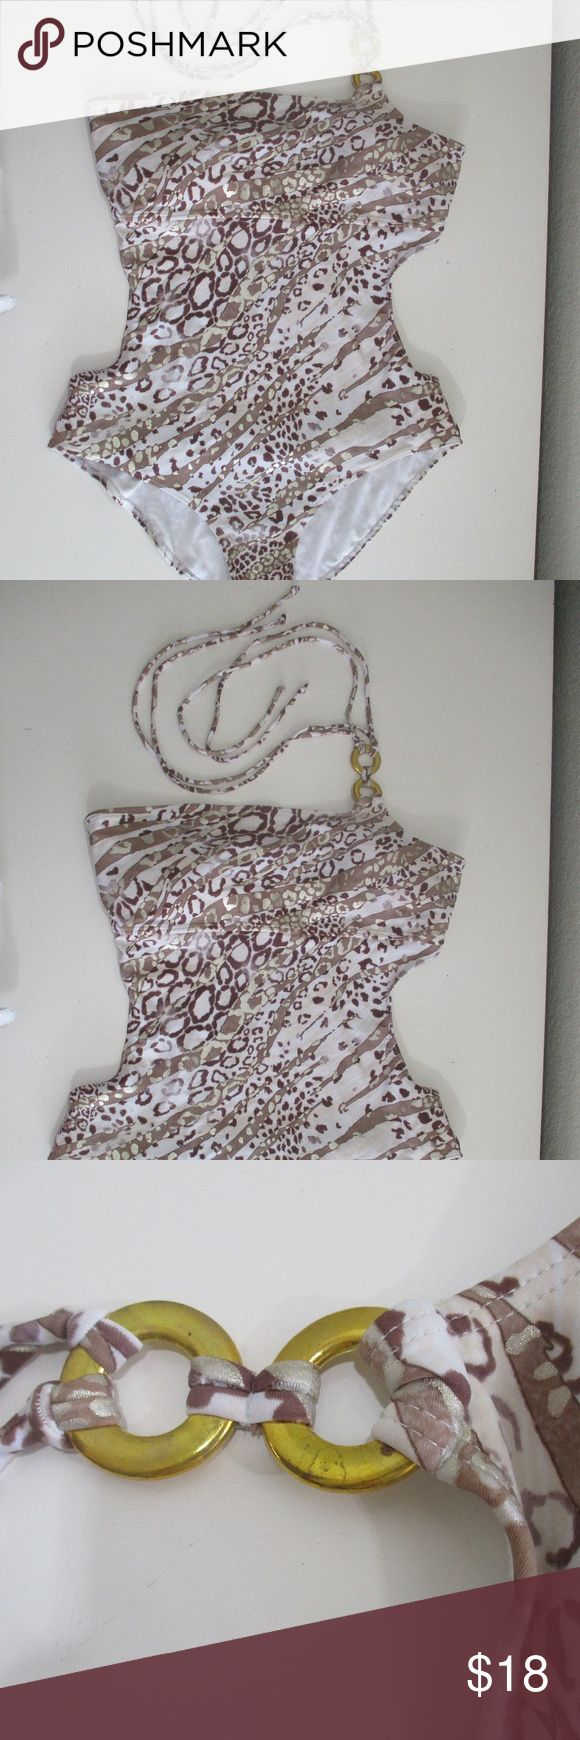 Sand N Sun Womens sz 16/18 Monokini Leopard PRE OWNED - LIKE NEW some patina on the gold ring, otherwise overall like new Sand N Sun  Womens sz 16/18  Monokini, Bathing Suit, Swim Suit Sexy, One Shoulder Halter Tie Brown Gold Metallic Leopard Sand N Sun Swim One Pieces